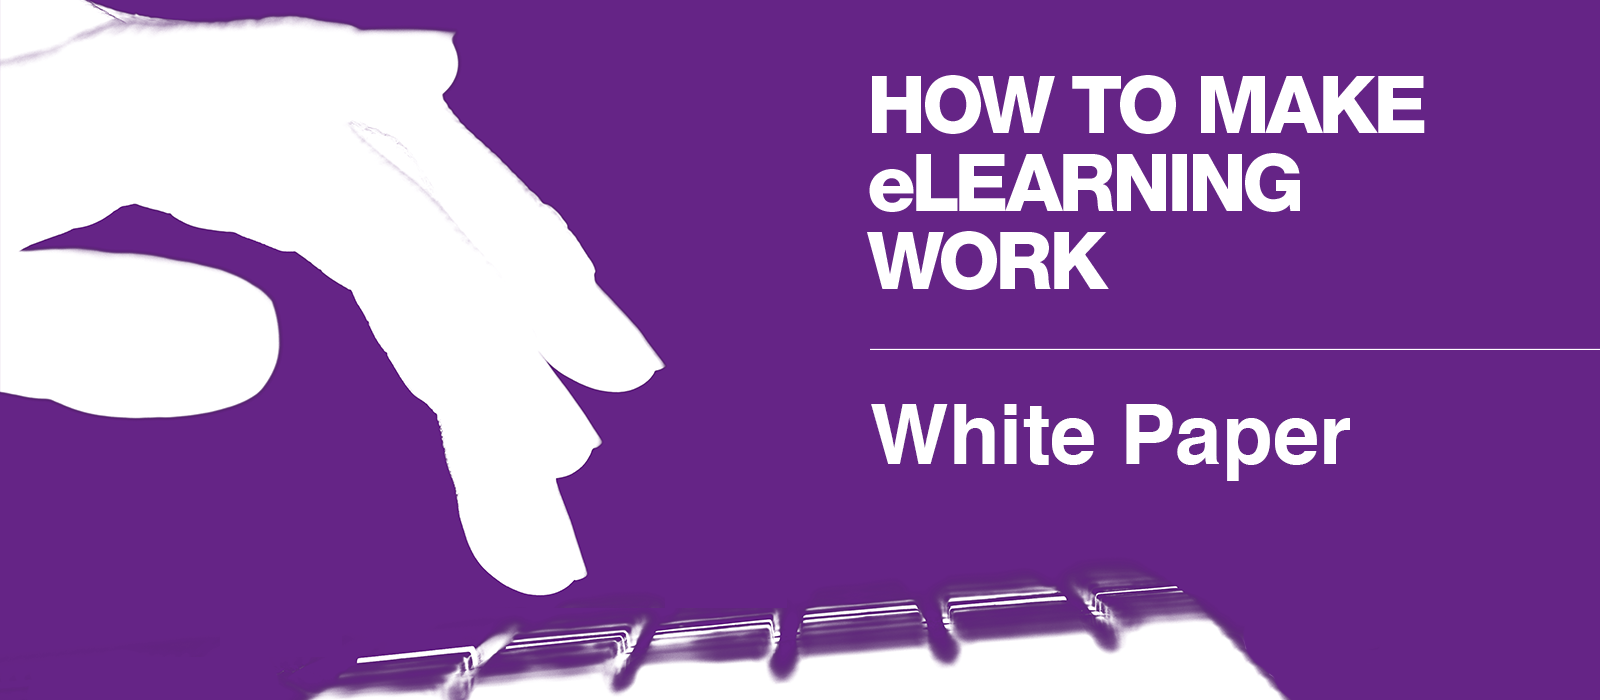 White Paper - How To Make eLearning Work